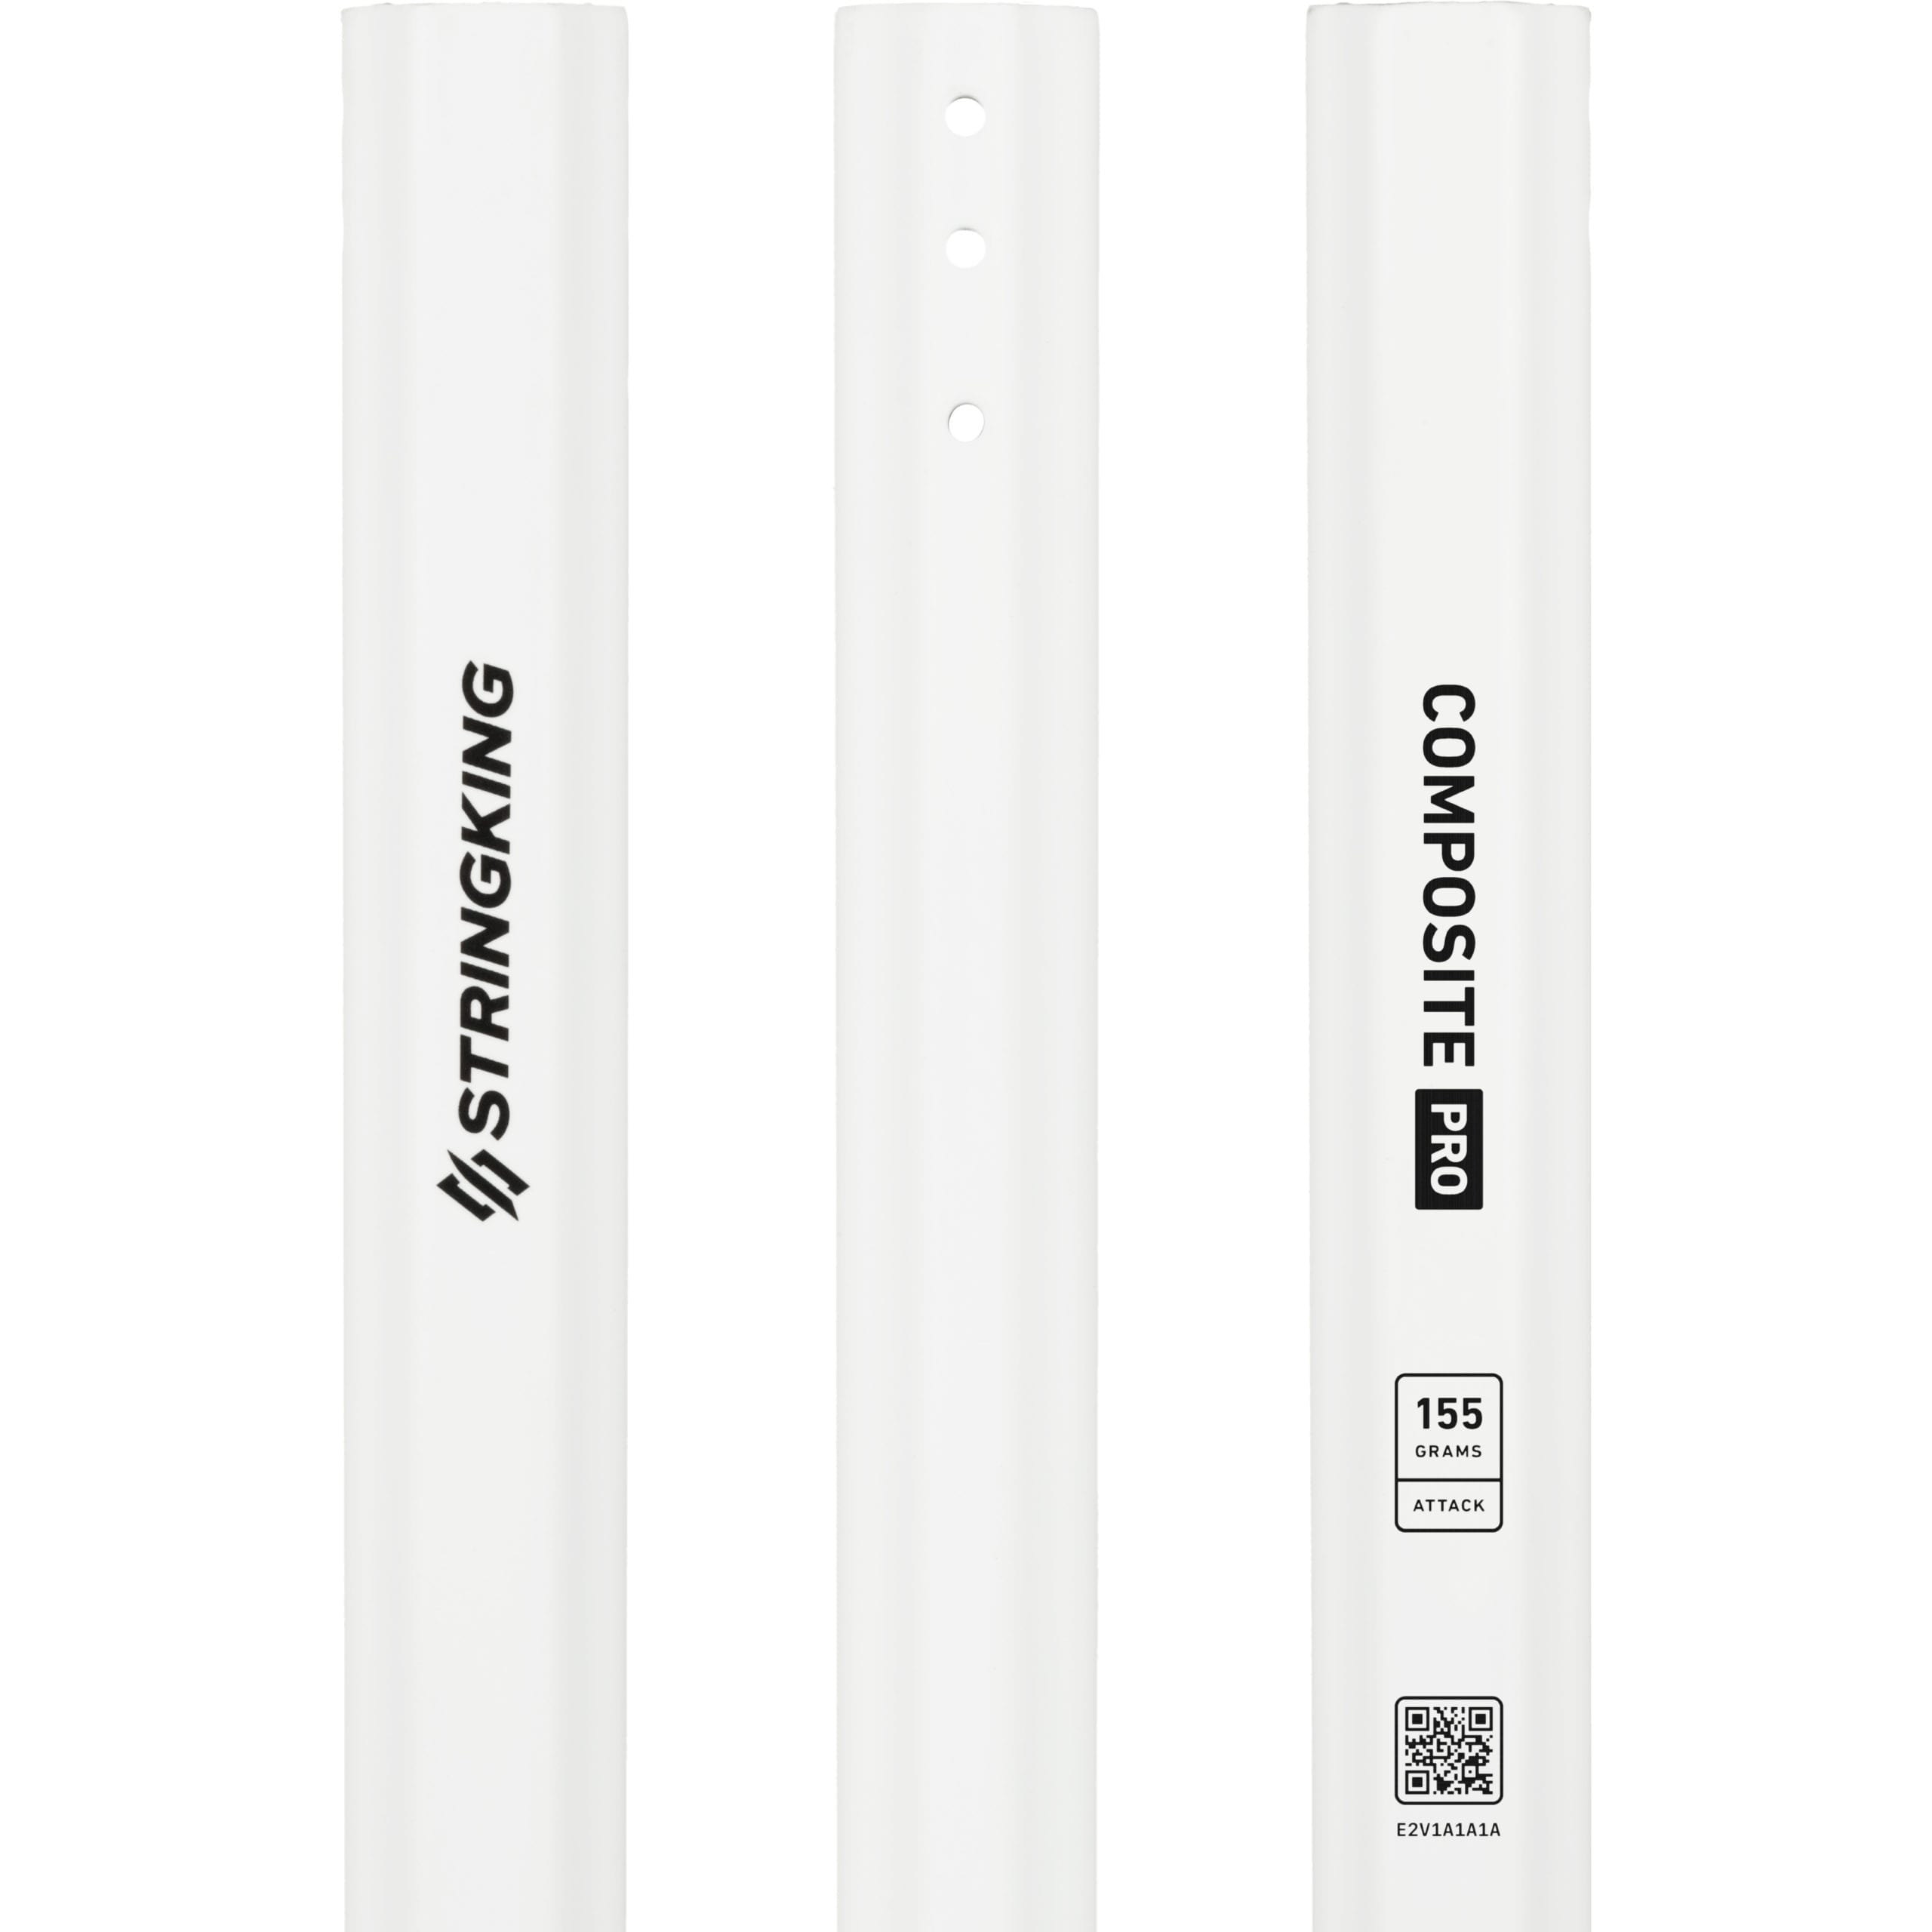 StringKing-Mens-Composite-Pro-155-Attack-Lacrosse-Shaft-White-Triple-View-scaled-1.jpg